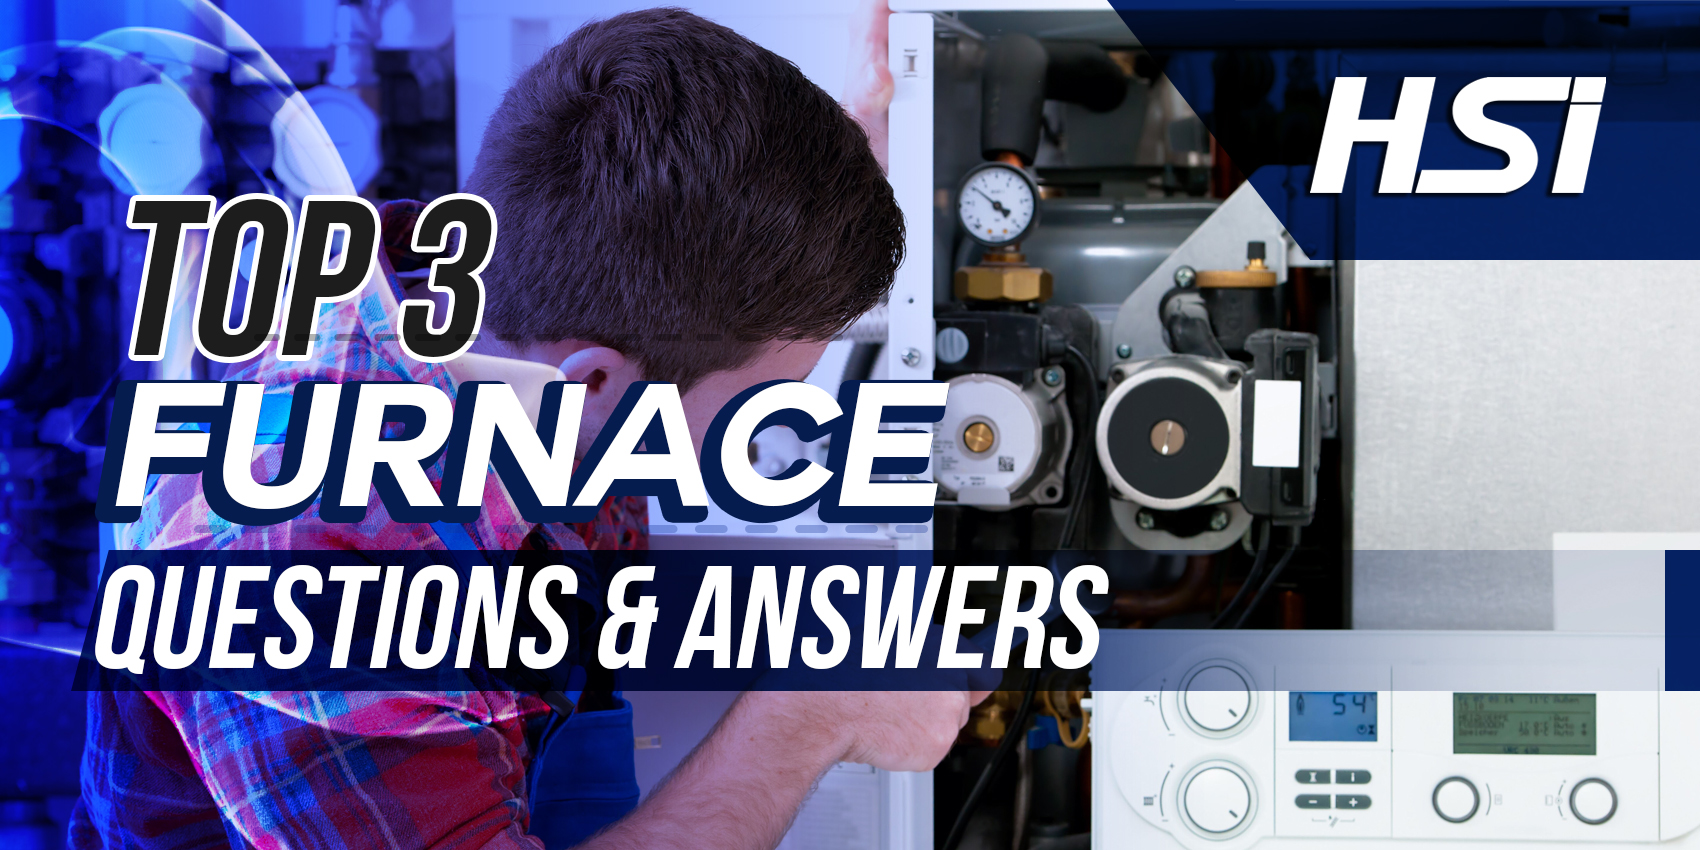 Top 3 Furnace Questions & Answers